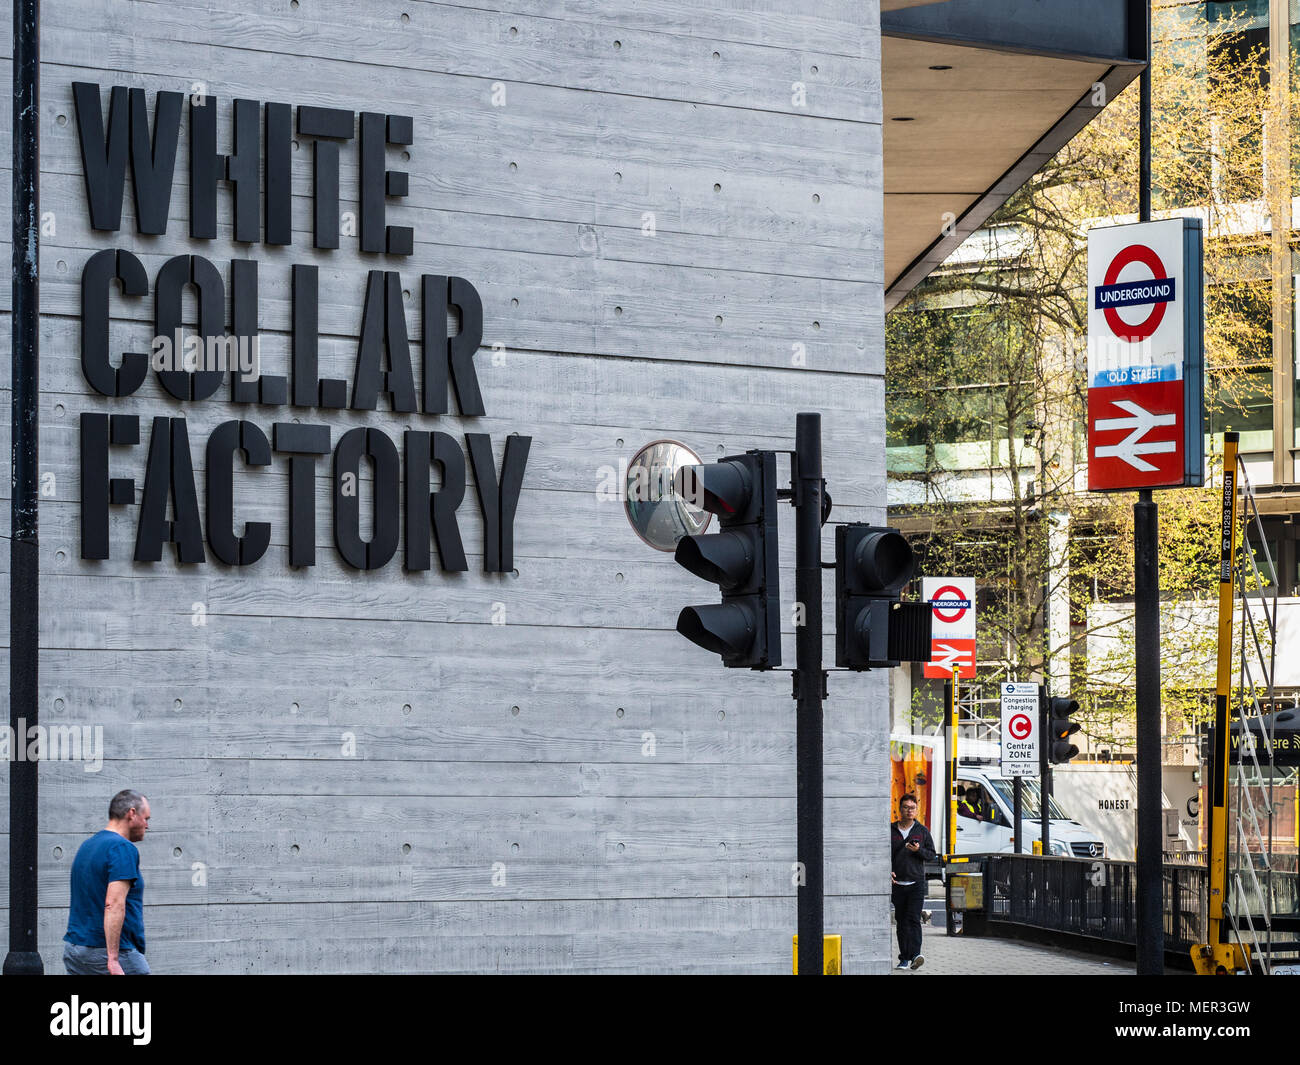 White Collar Factory on Old Street Roundabout in London's Silicon Roundabout district. Designed by AHMM Architects and Arup engineers, opened in 2017. - Stock Image